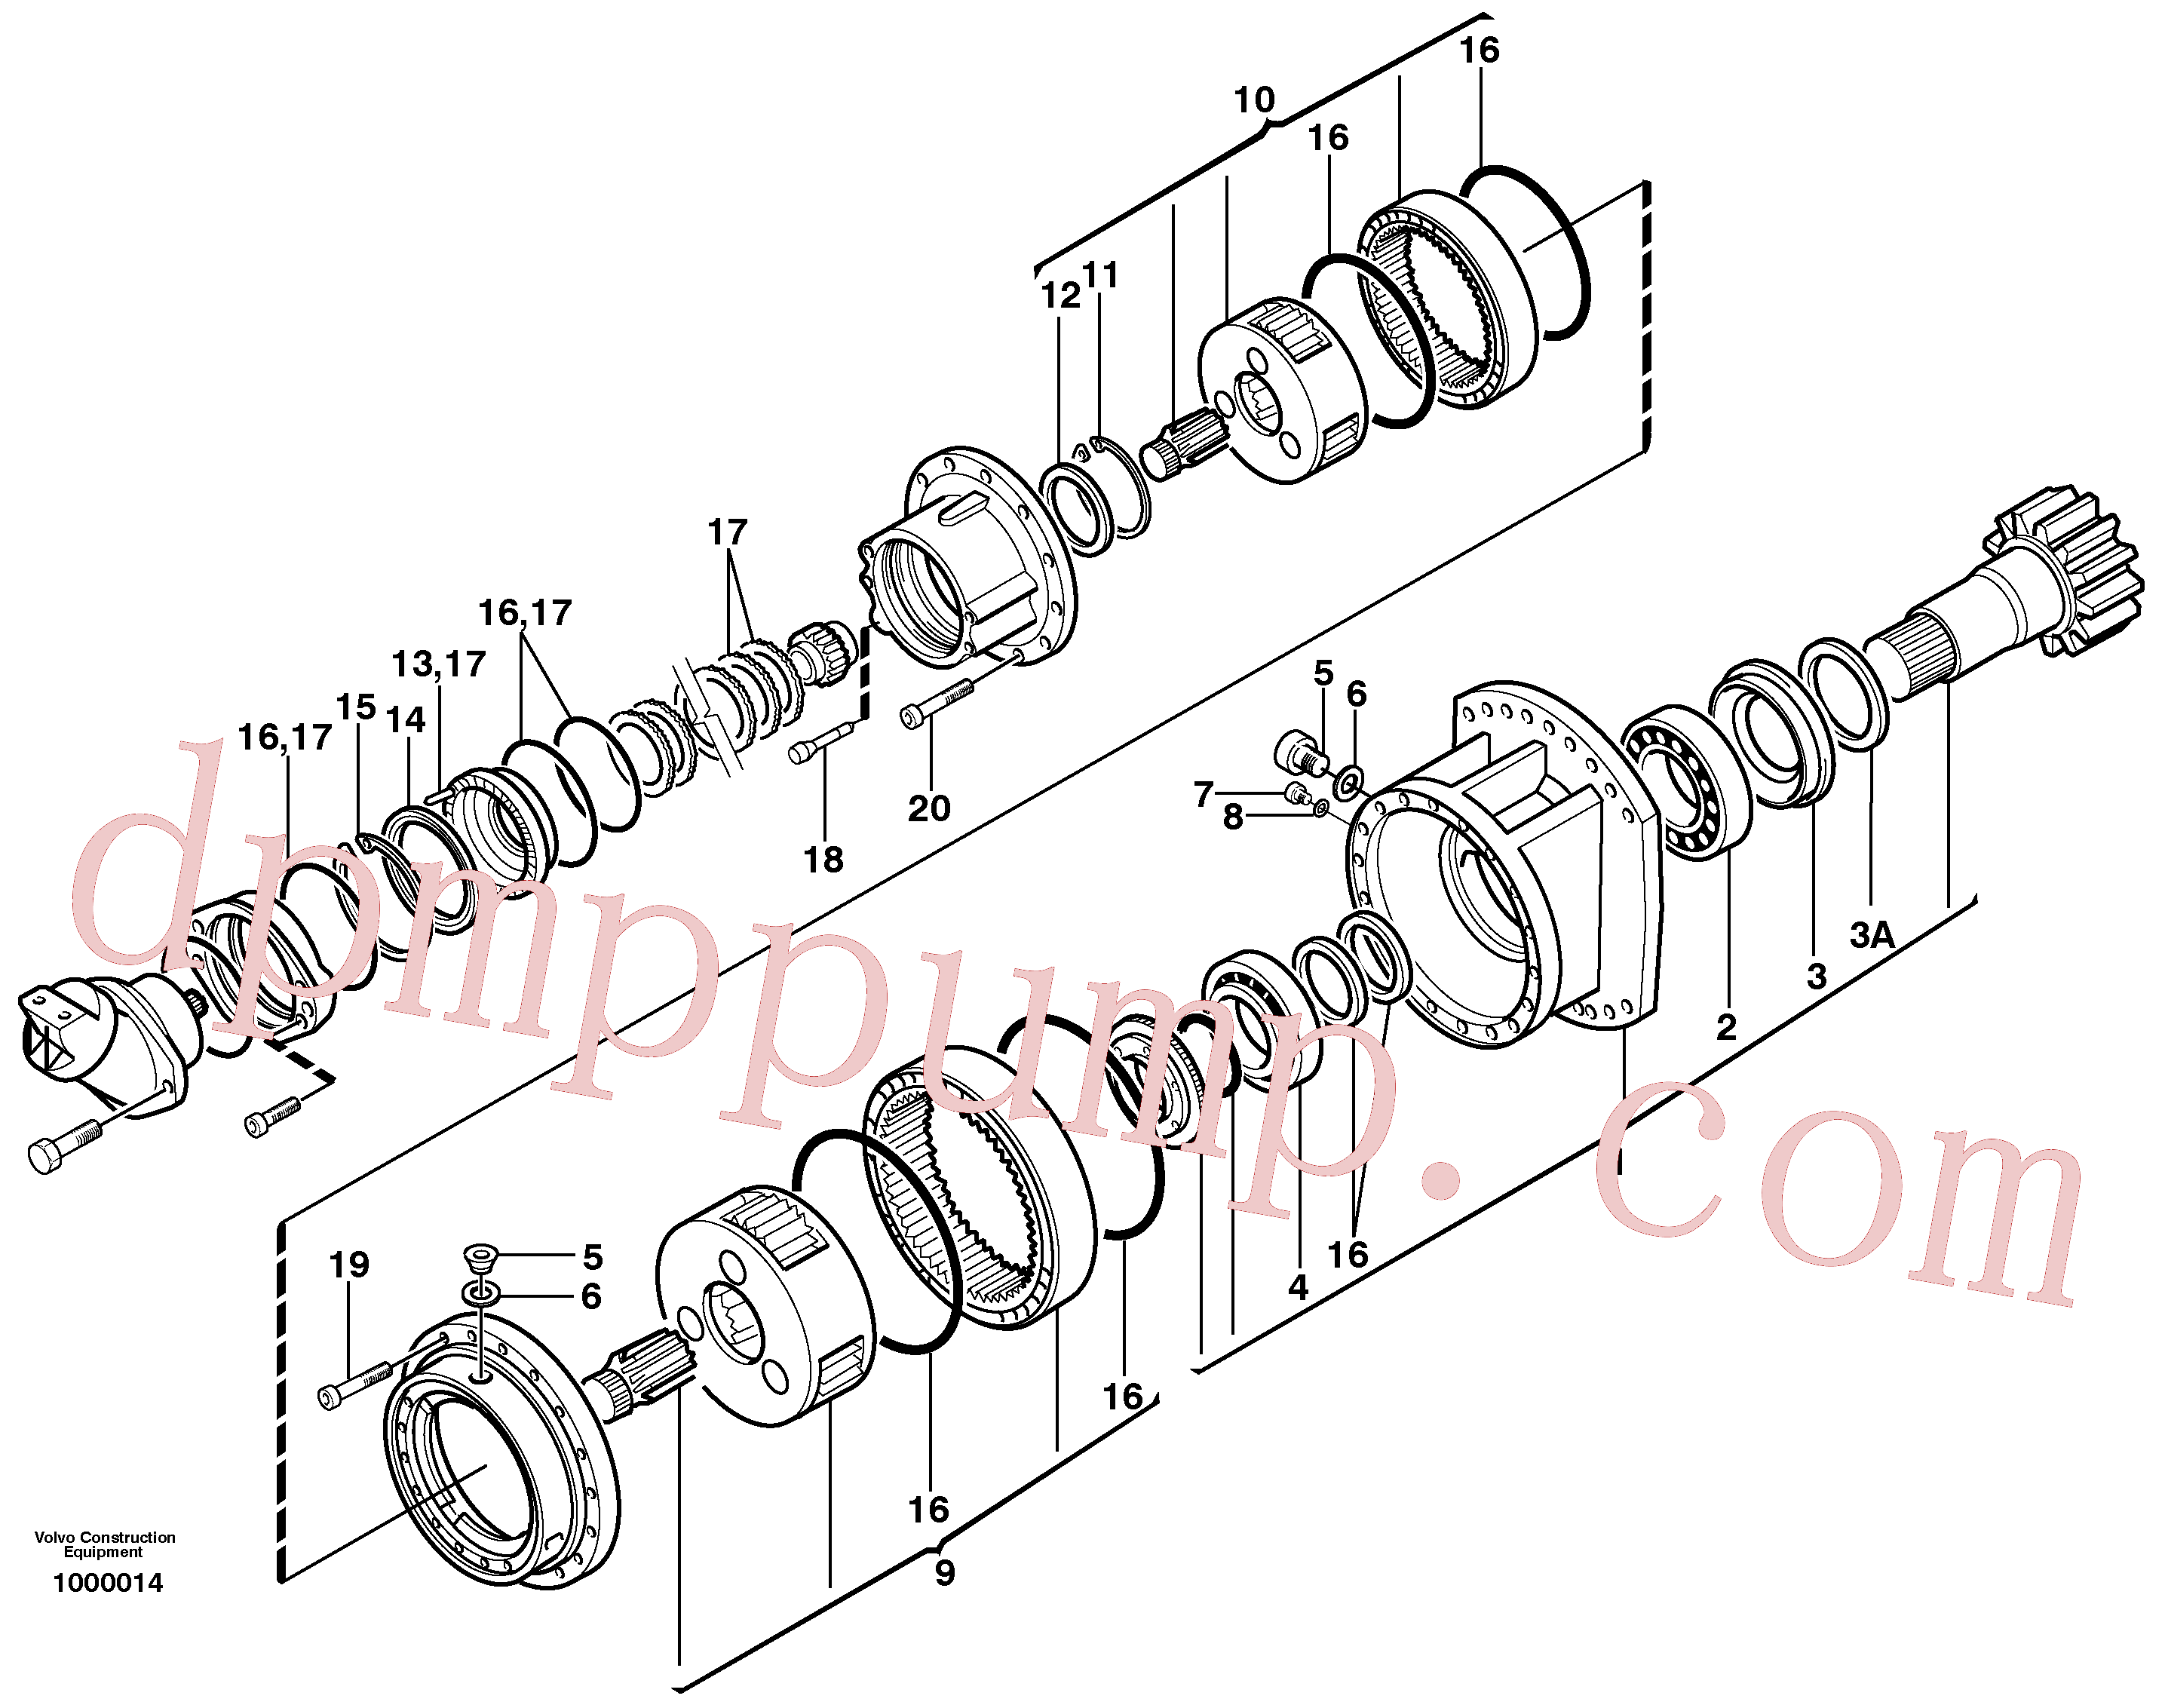 VOE11707952 for Volvo Swing gearbox(1000014 assembly)